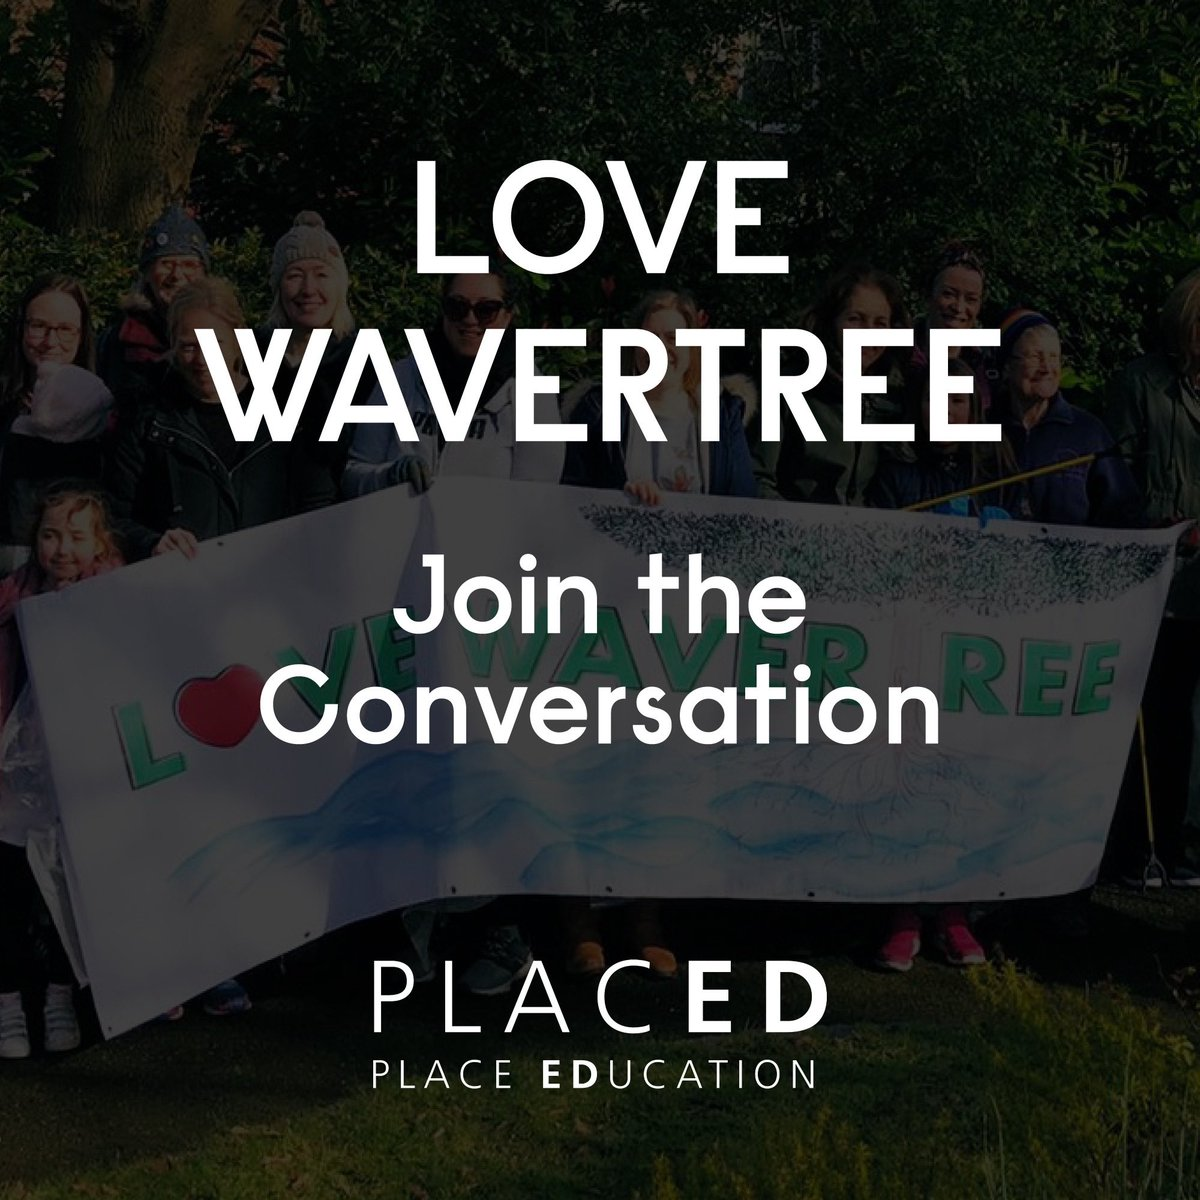 We are very excited to be working in partnership with @LoveWavertree to deliver a brand new engagement focus! Love Wavertree are committed to helping create a happy, healthy area and they want to hear from you! Click: placed-engagement.org.uk/Wavertree to get involved! #PLACEDEngagement